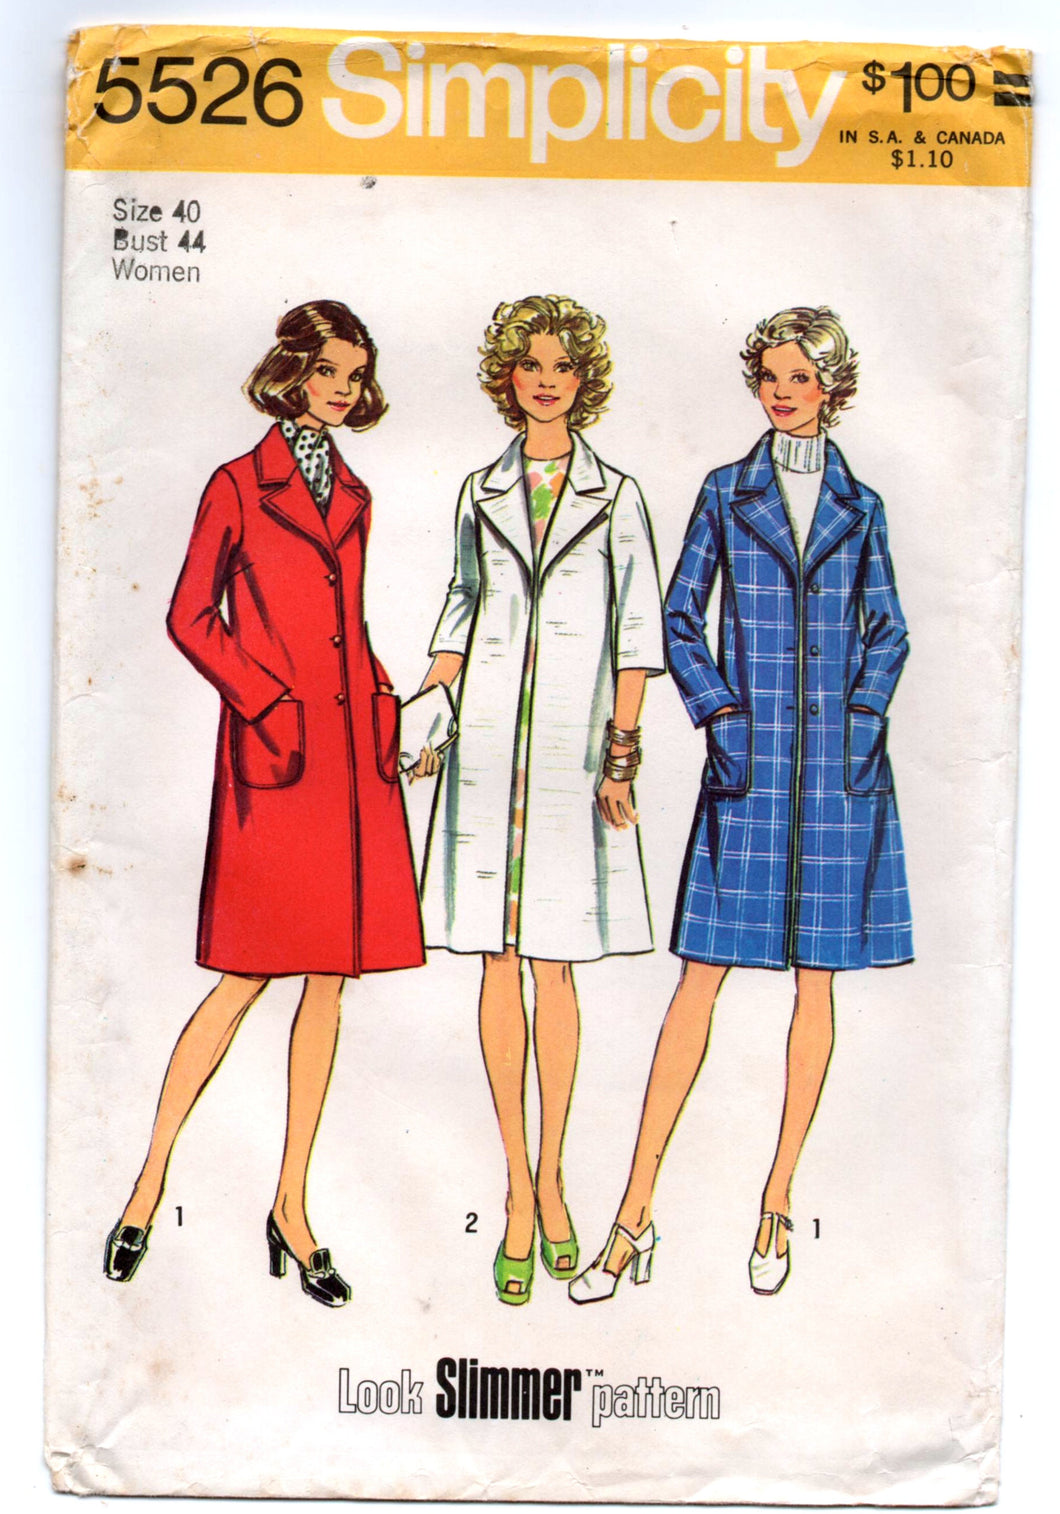 1970's Simplicity Coat with wide lapels Pattern - Bust 44